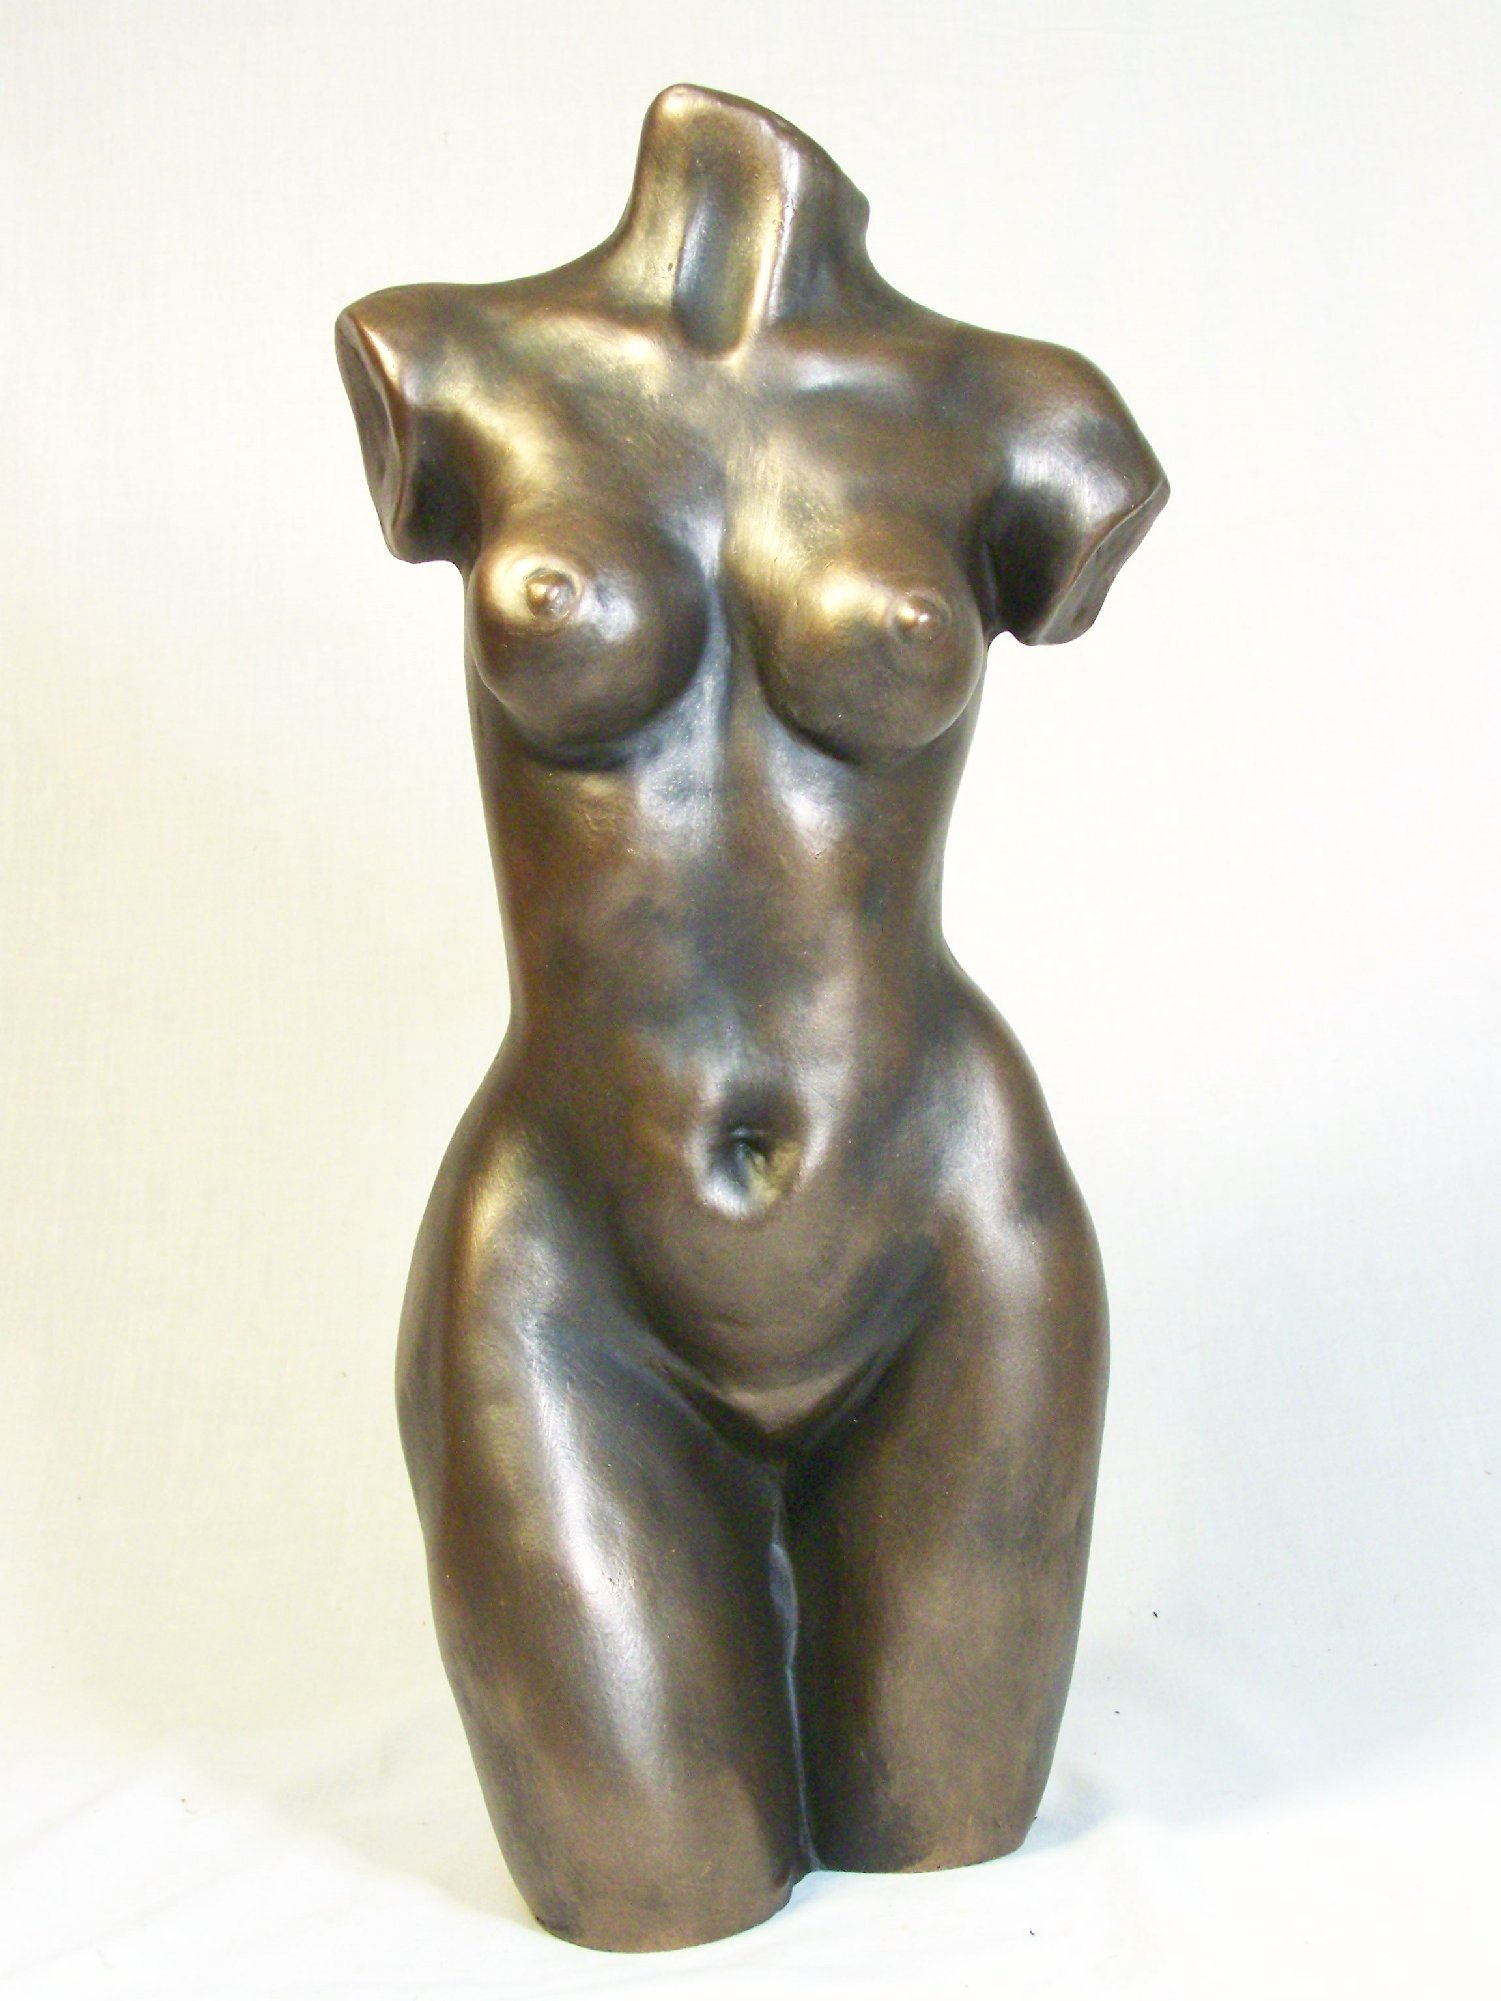 Sculpture of a woman torso